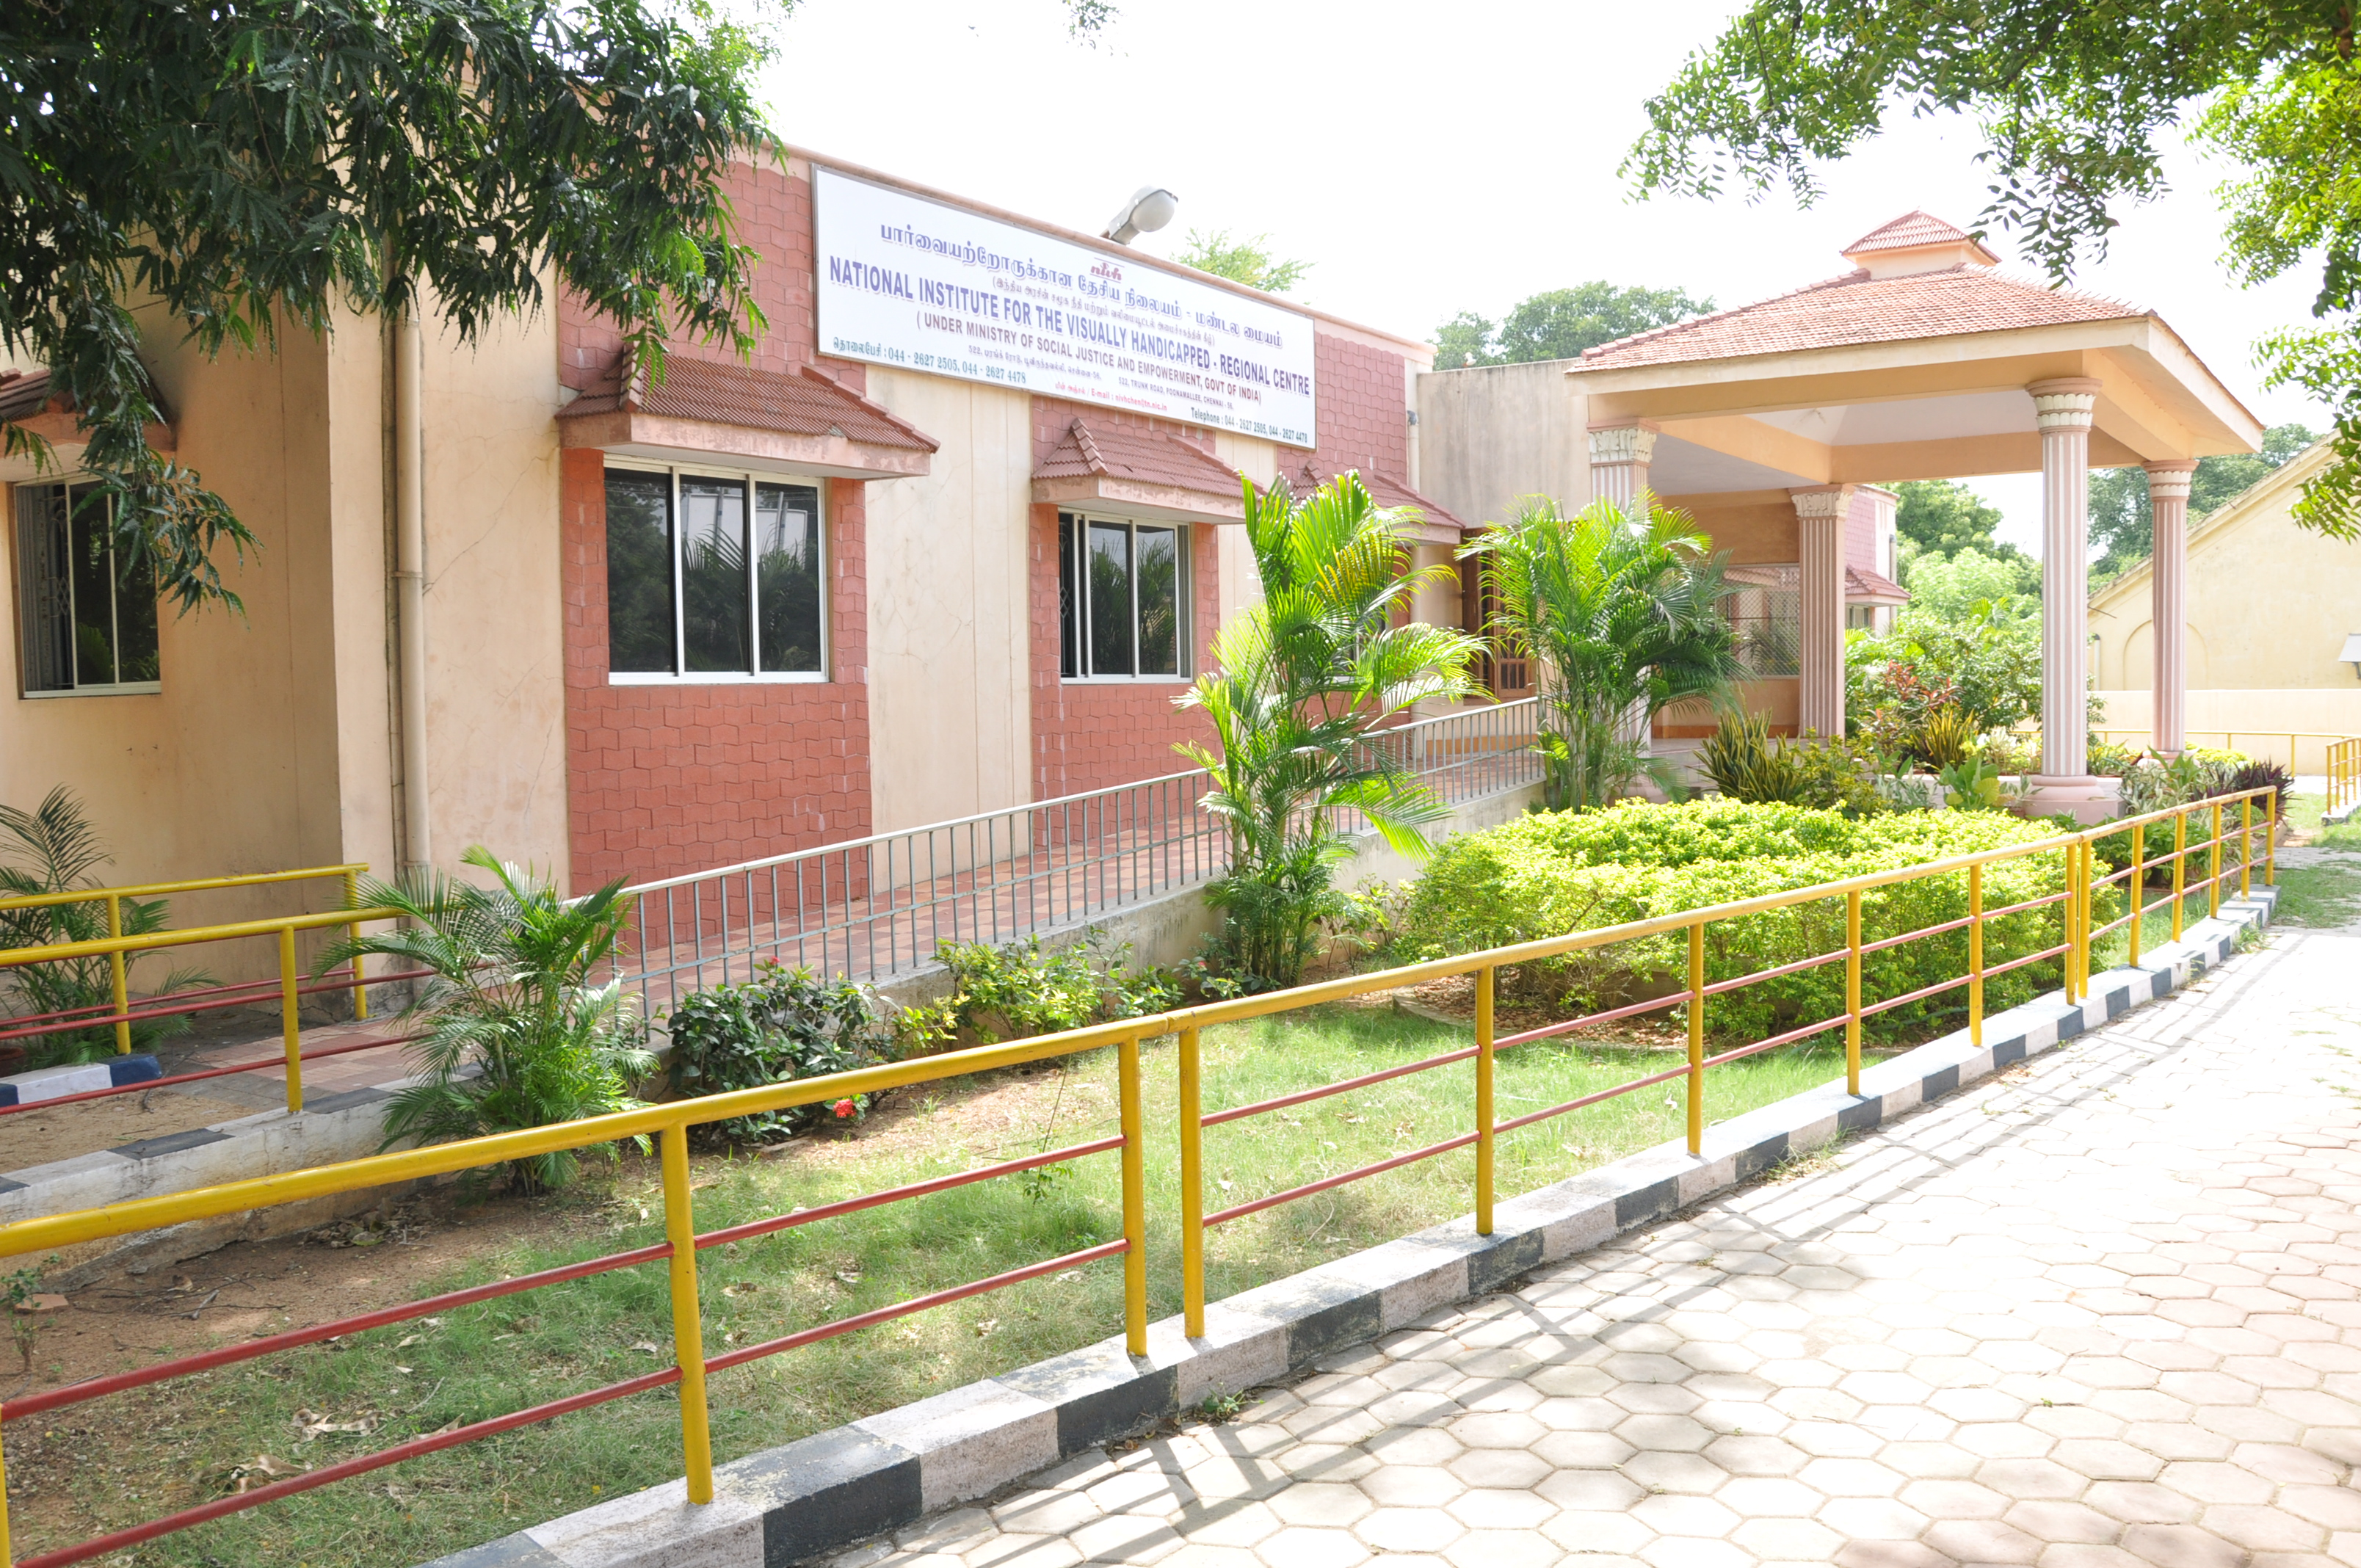 Chennai Main Building